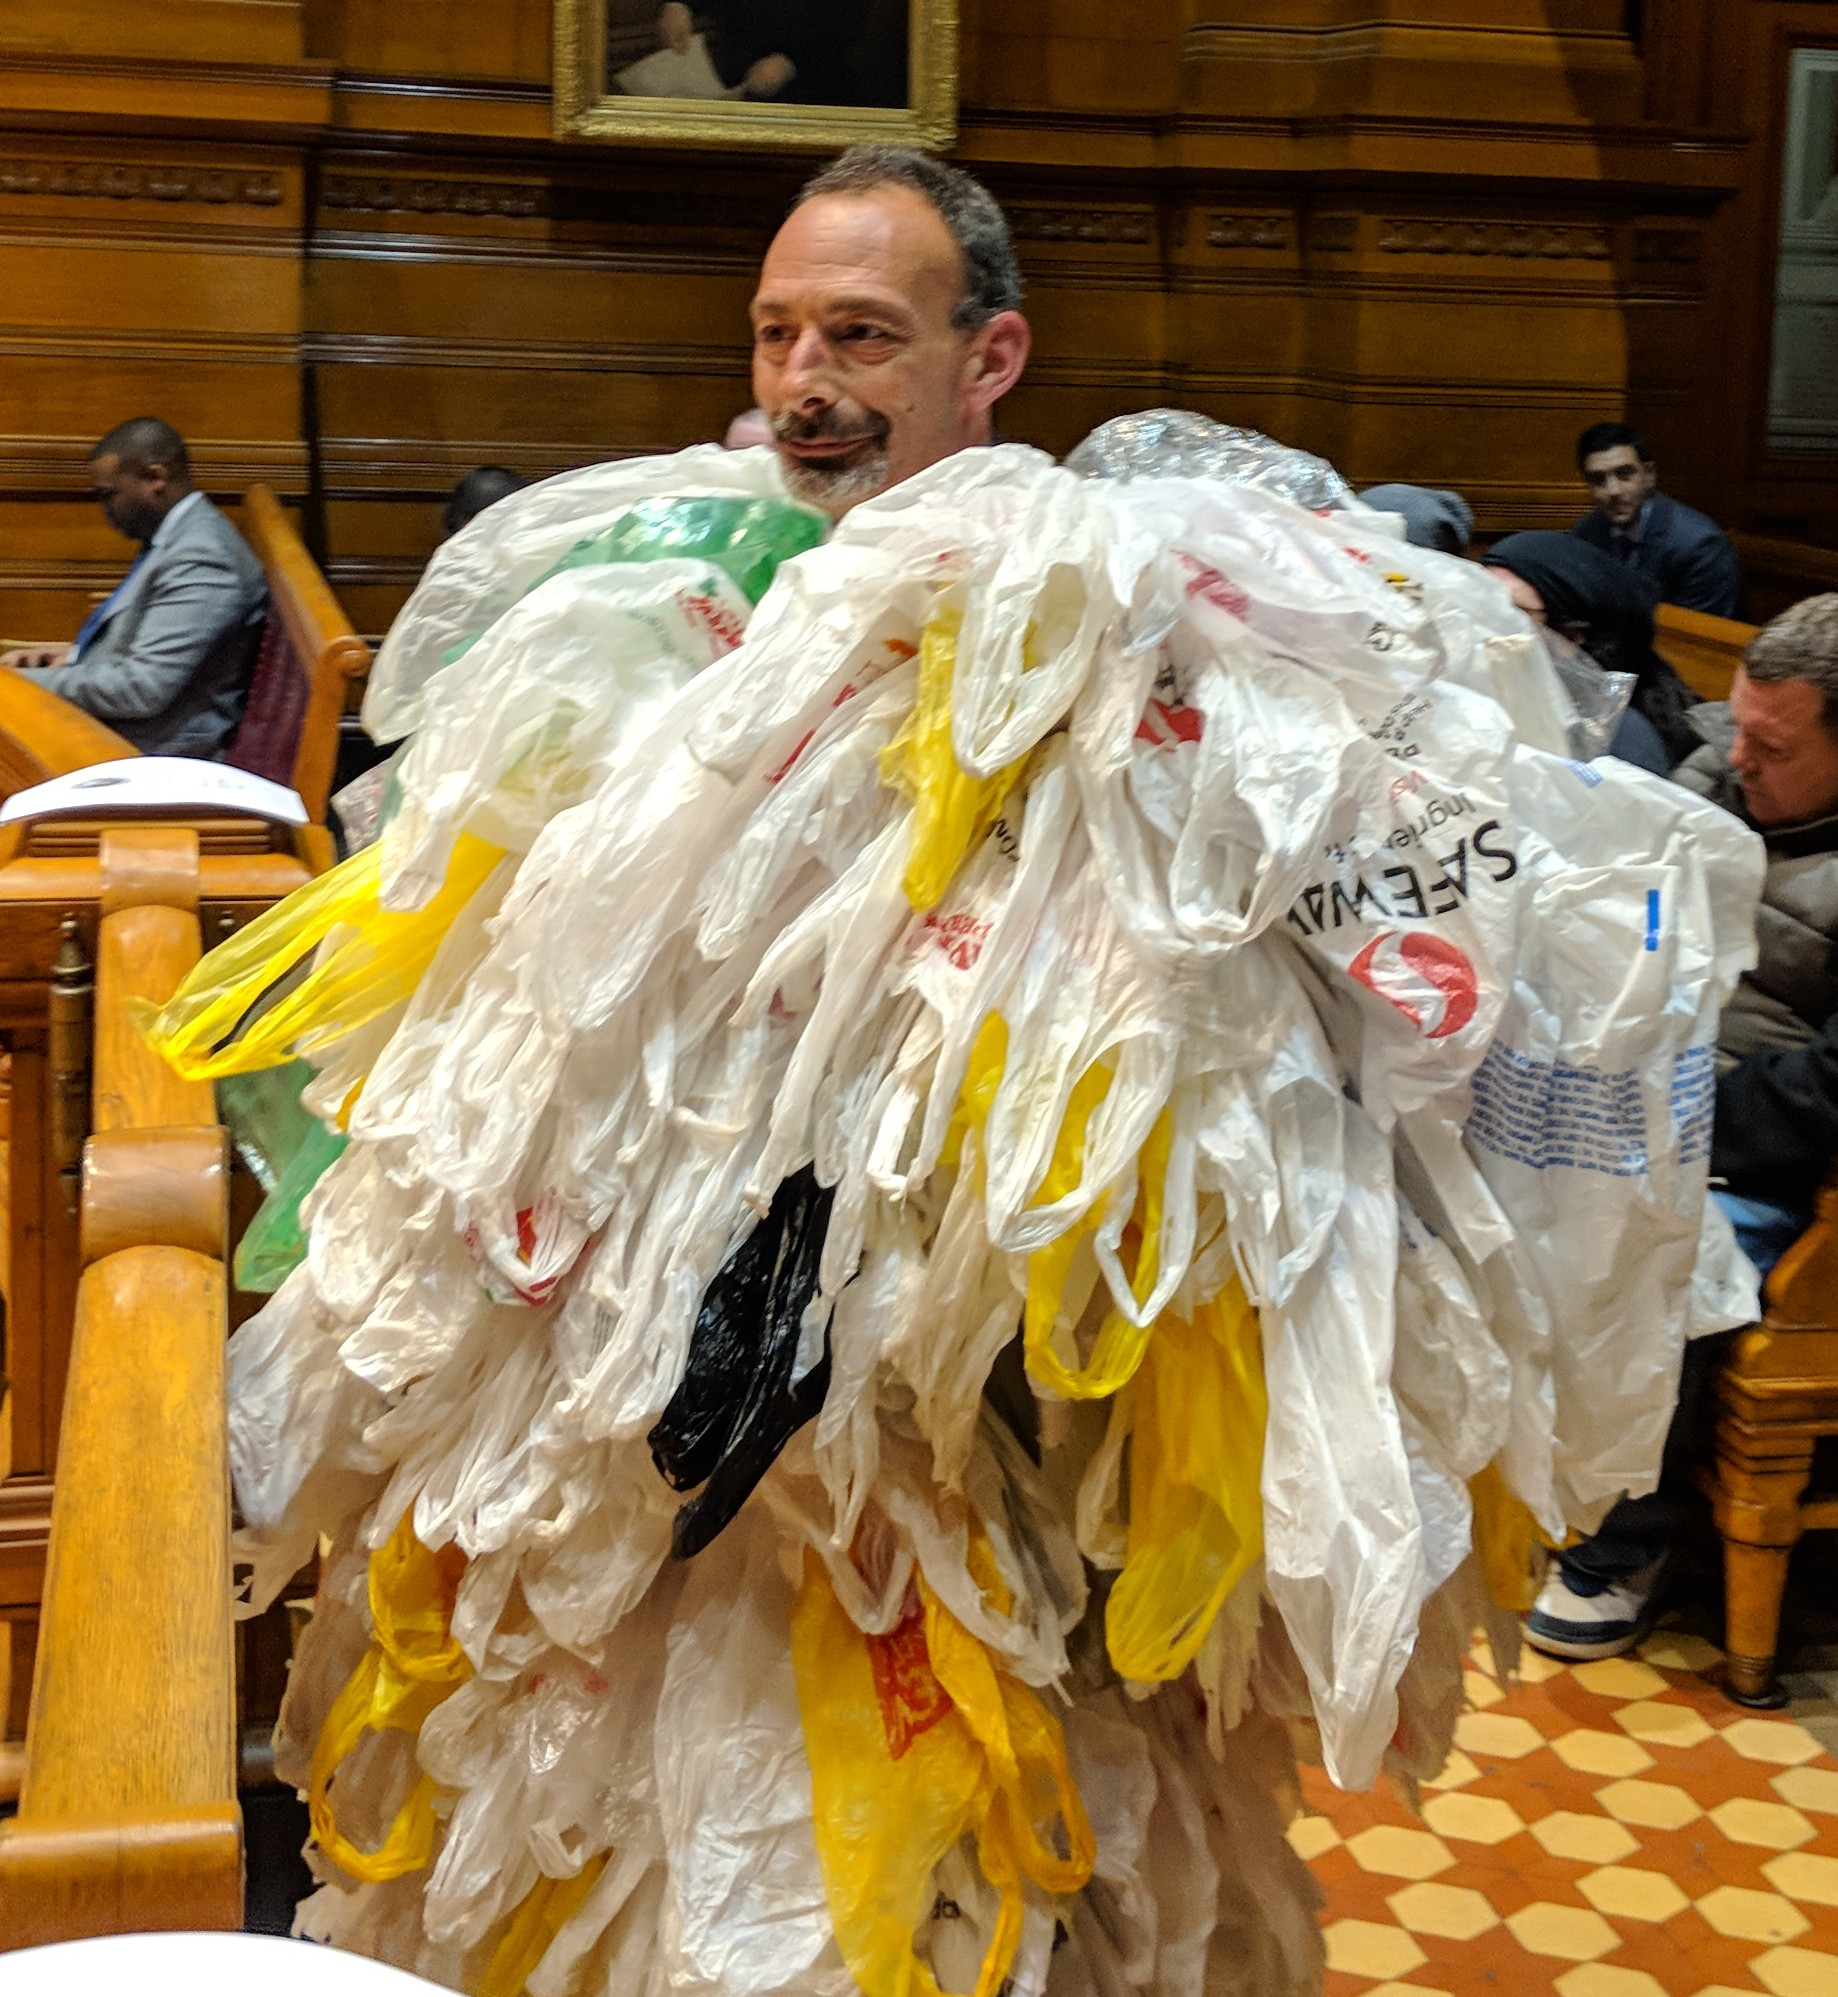 At the Providence City Council's March 1 meeting, Lou Perrotti, director of conservation programs at Roger Williams Park Zoo, wore a suit of plastic bags in support of the ban. (Tim Faulkner/ecoRI News)